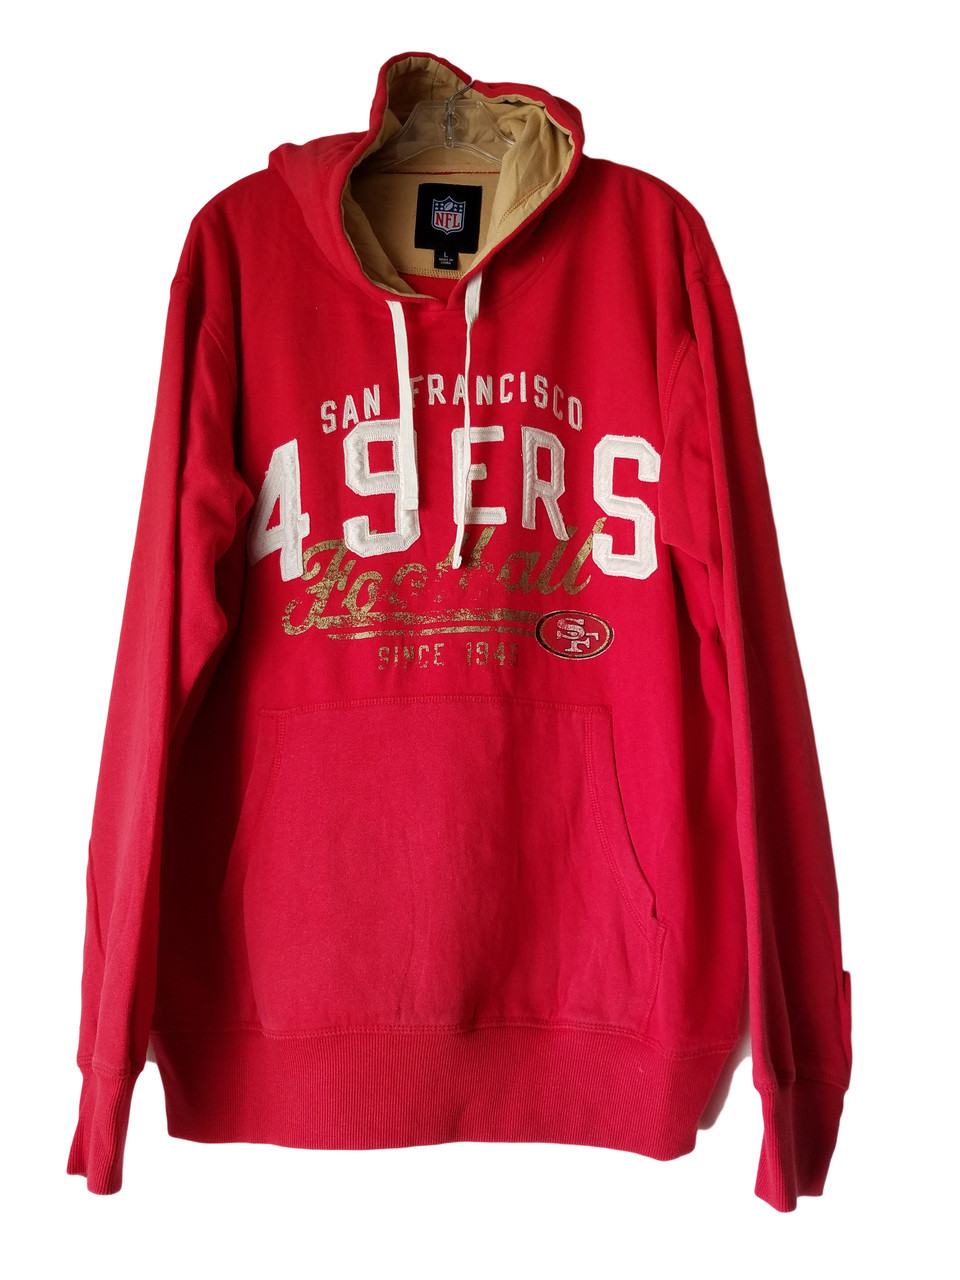 San Francisco 49ers Vintage Style Pullover Hoodies - e proclub.com 5f60be8a0